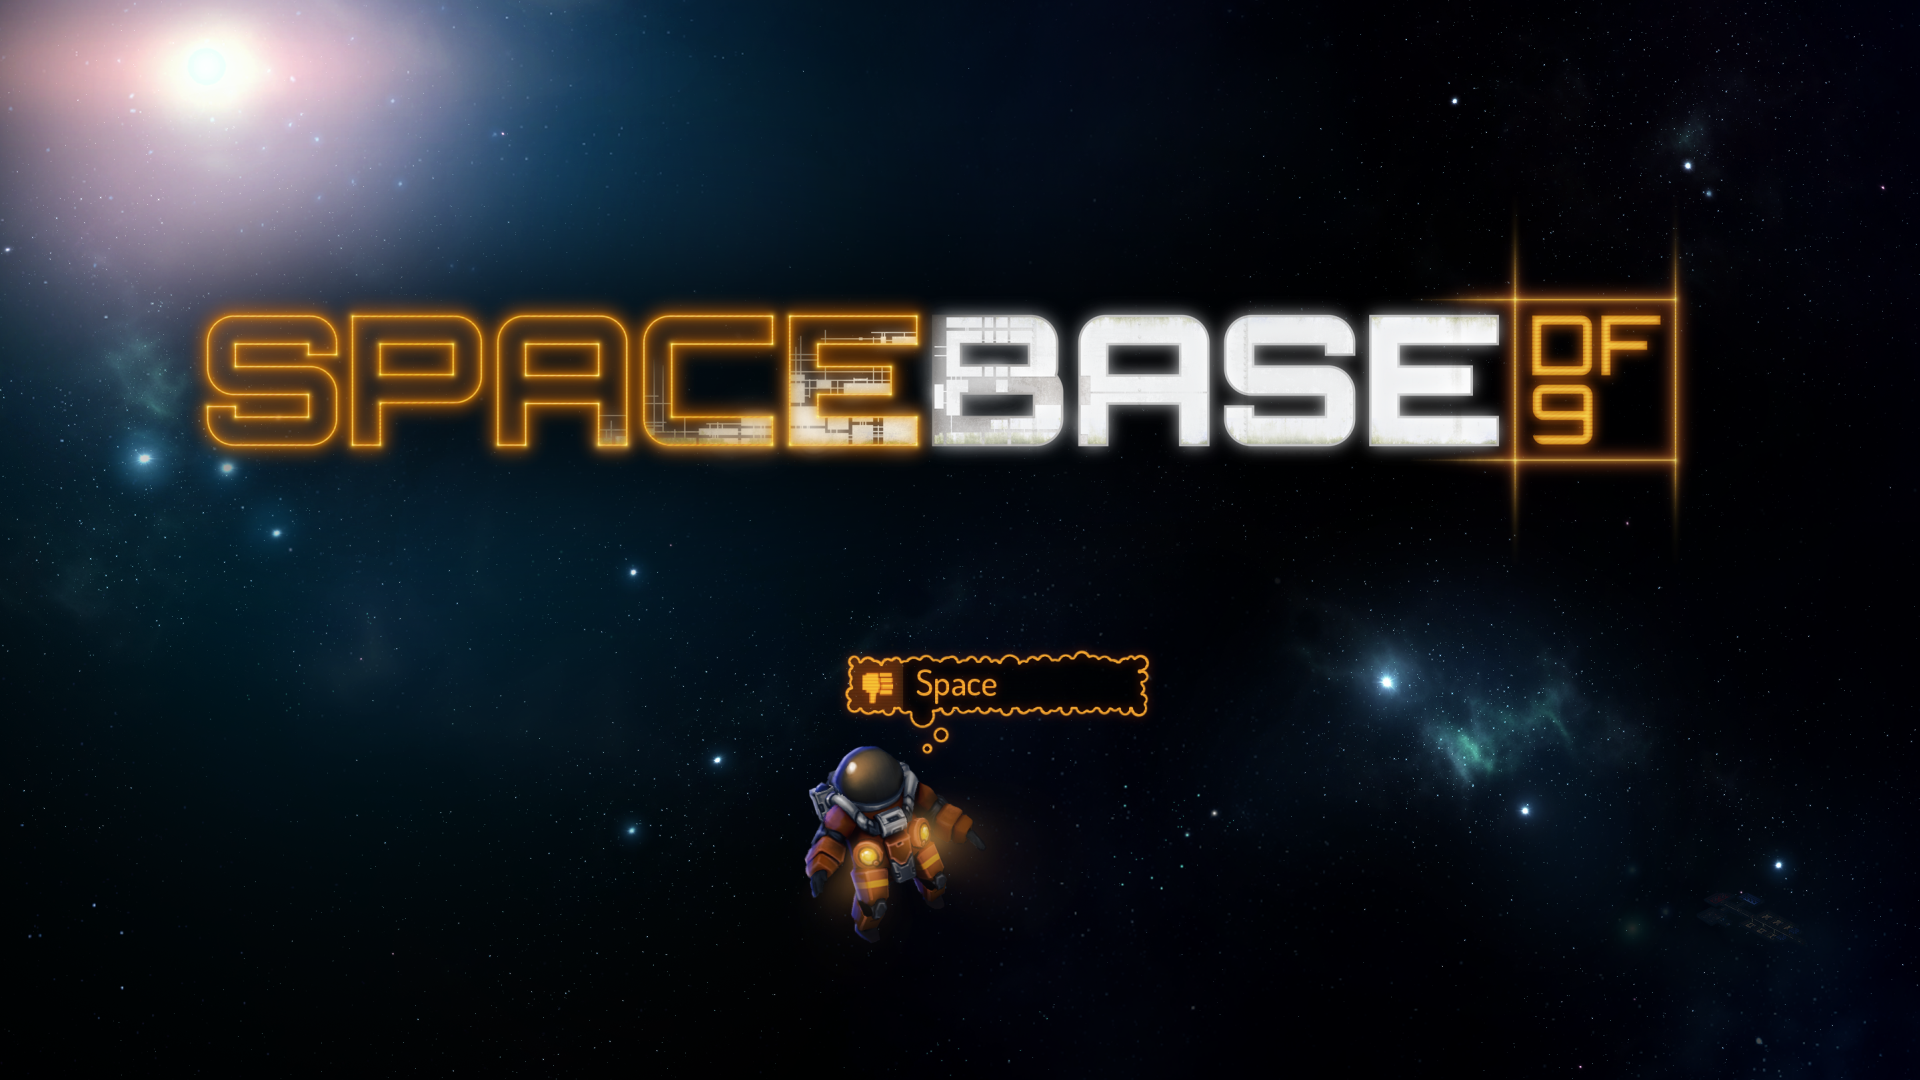 Spacebase DF-9 Wallpaper